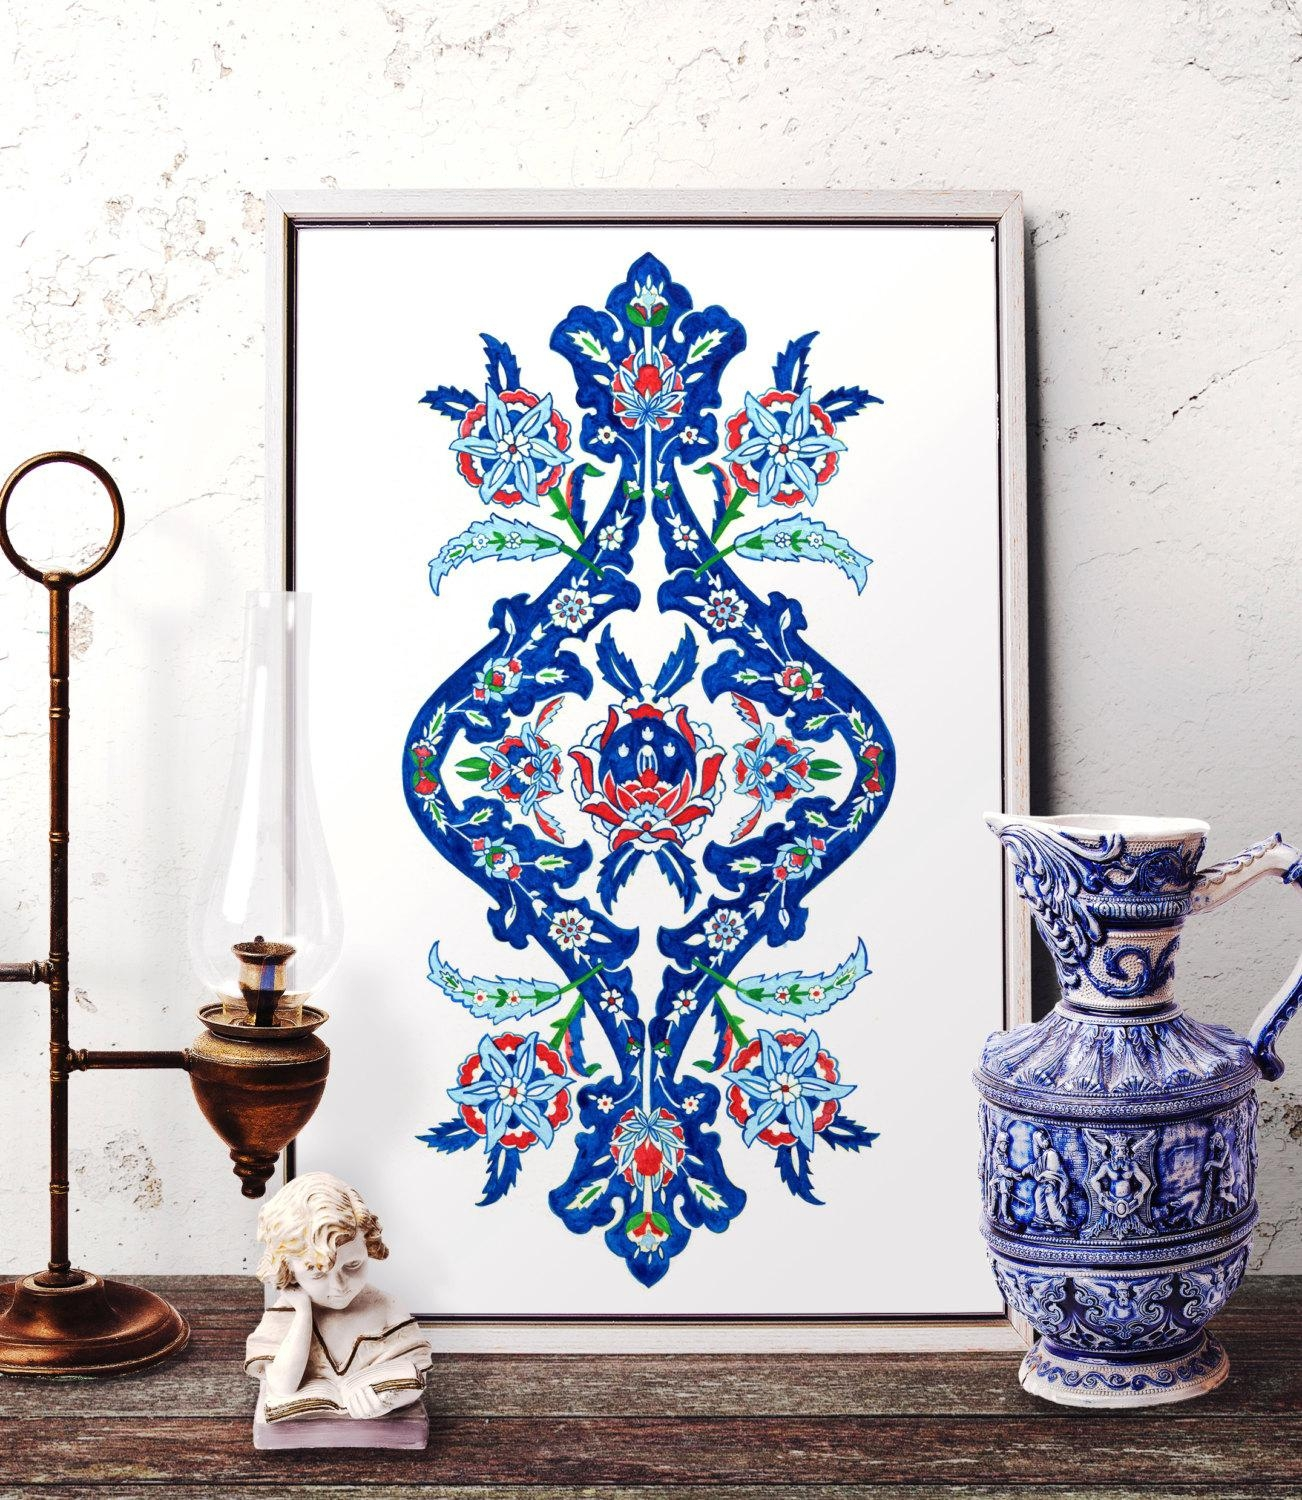 Ottoman Floral Motif Watercolor Painting Traditional Turkish Within Turkish Wall Art (View 10 of 20)